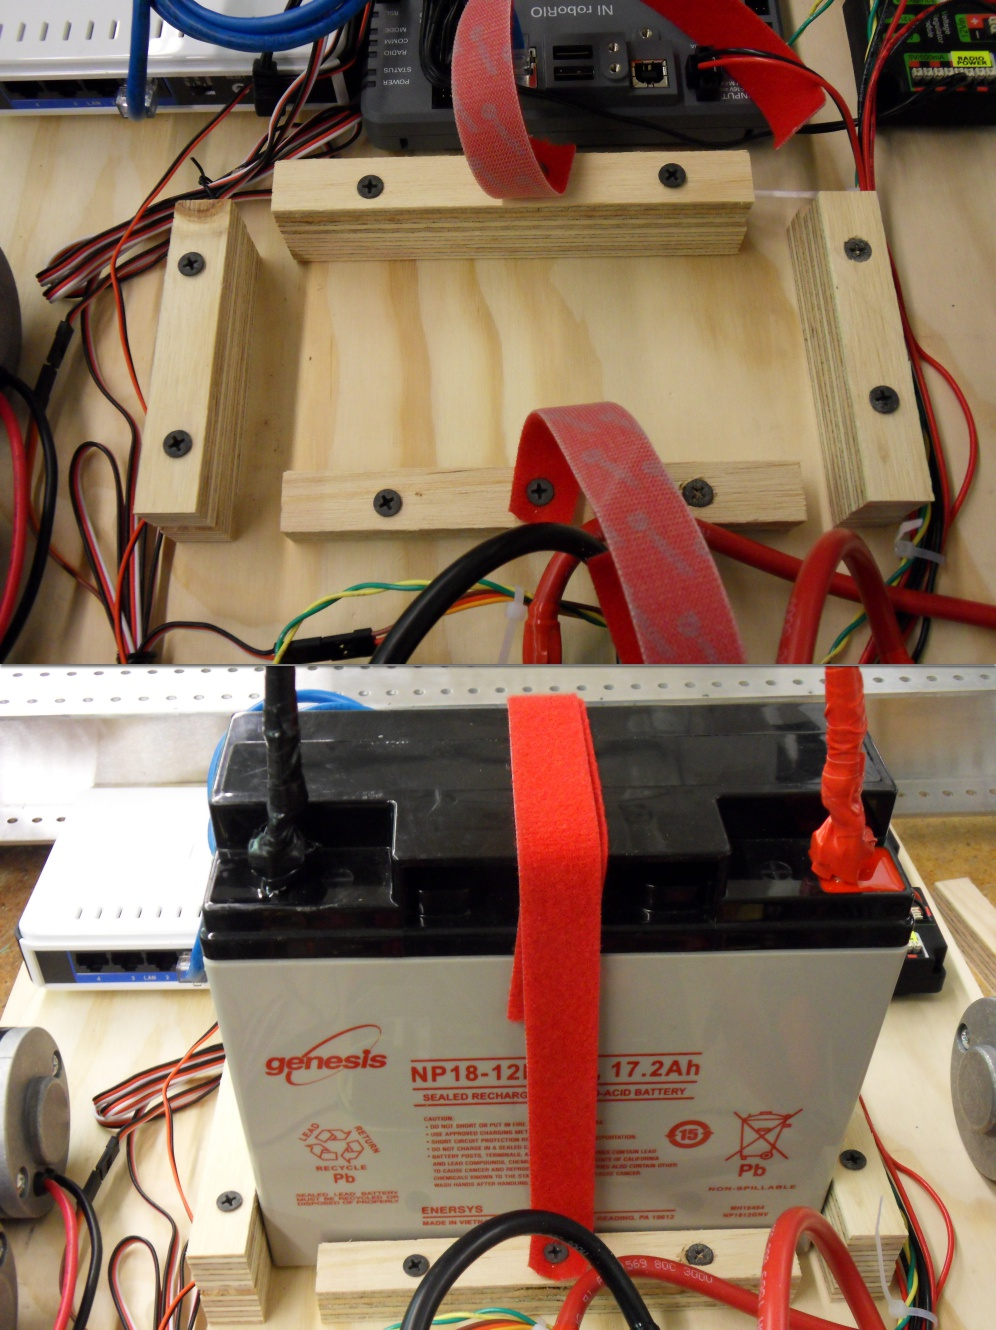 Wiring The Frc Control System Getting Started With Circuit Breaker Panel Board Harness Diagram Battery Box